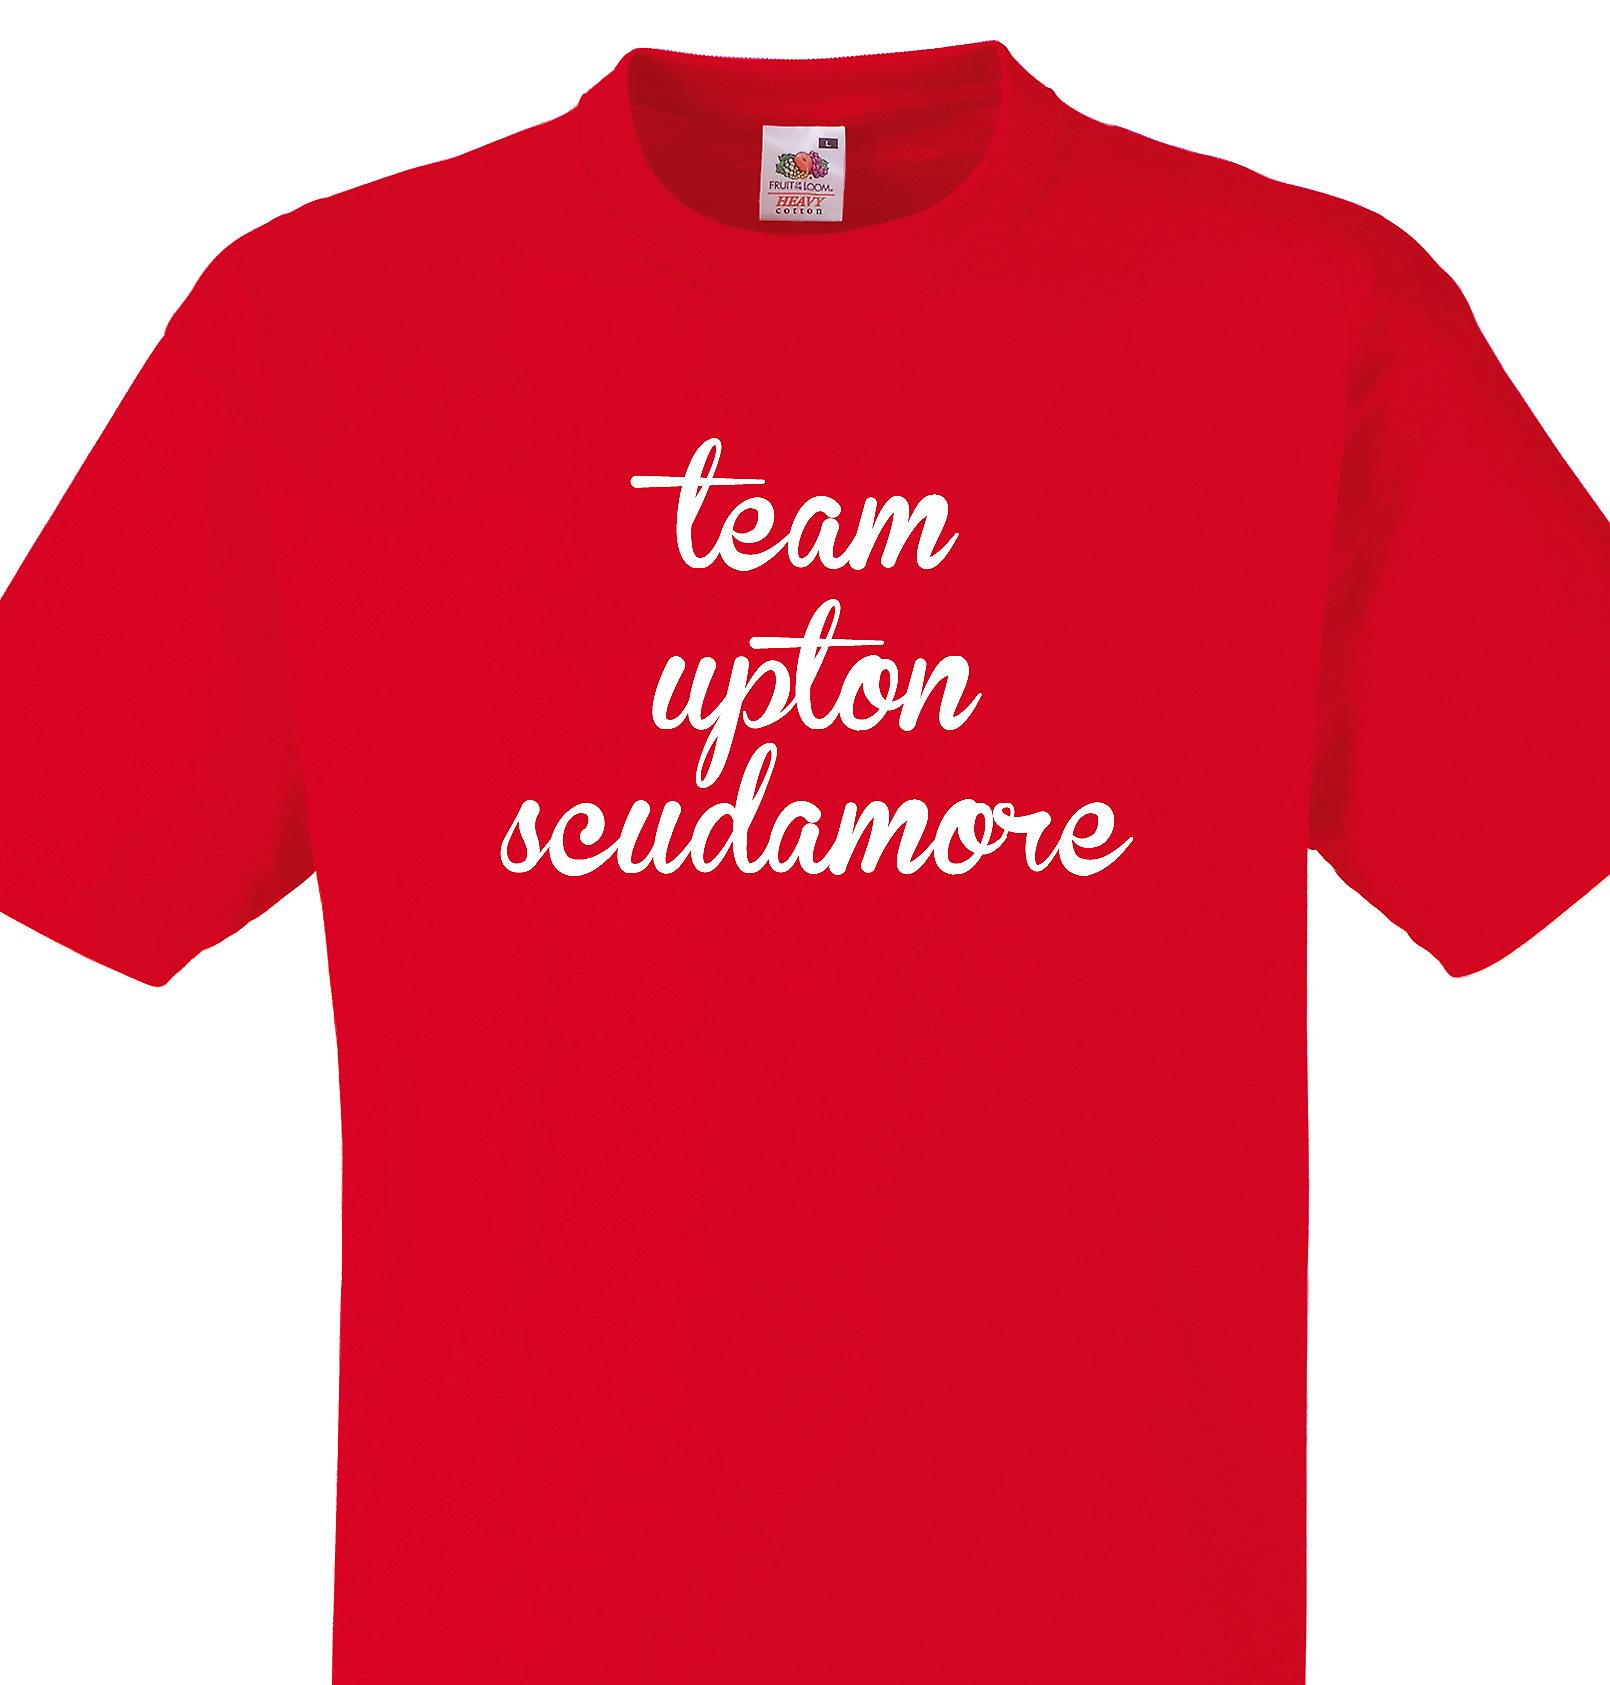 Team Upton scudamore Red T shirt